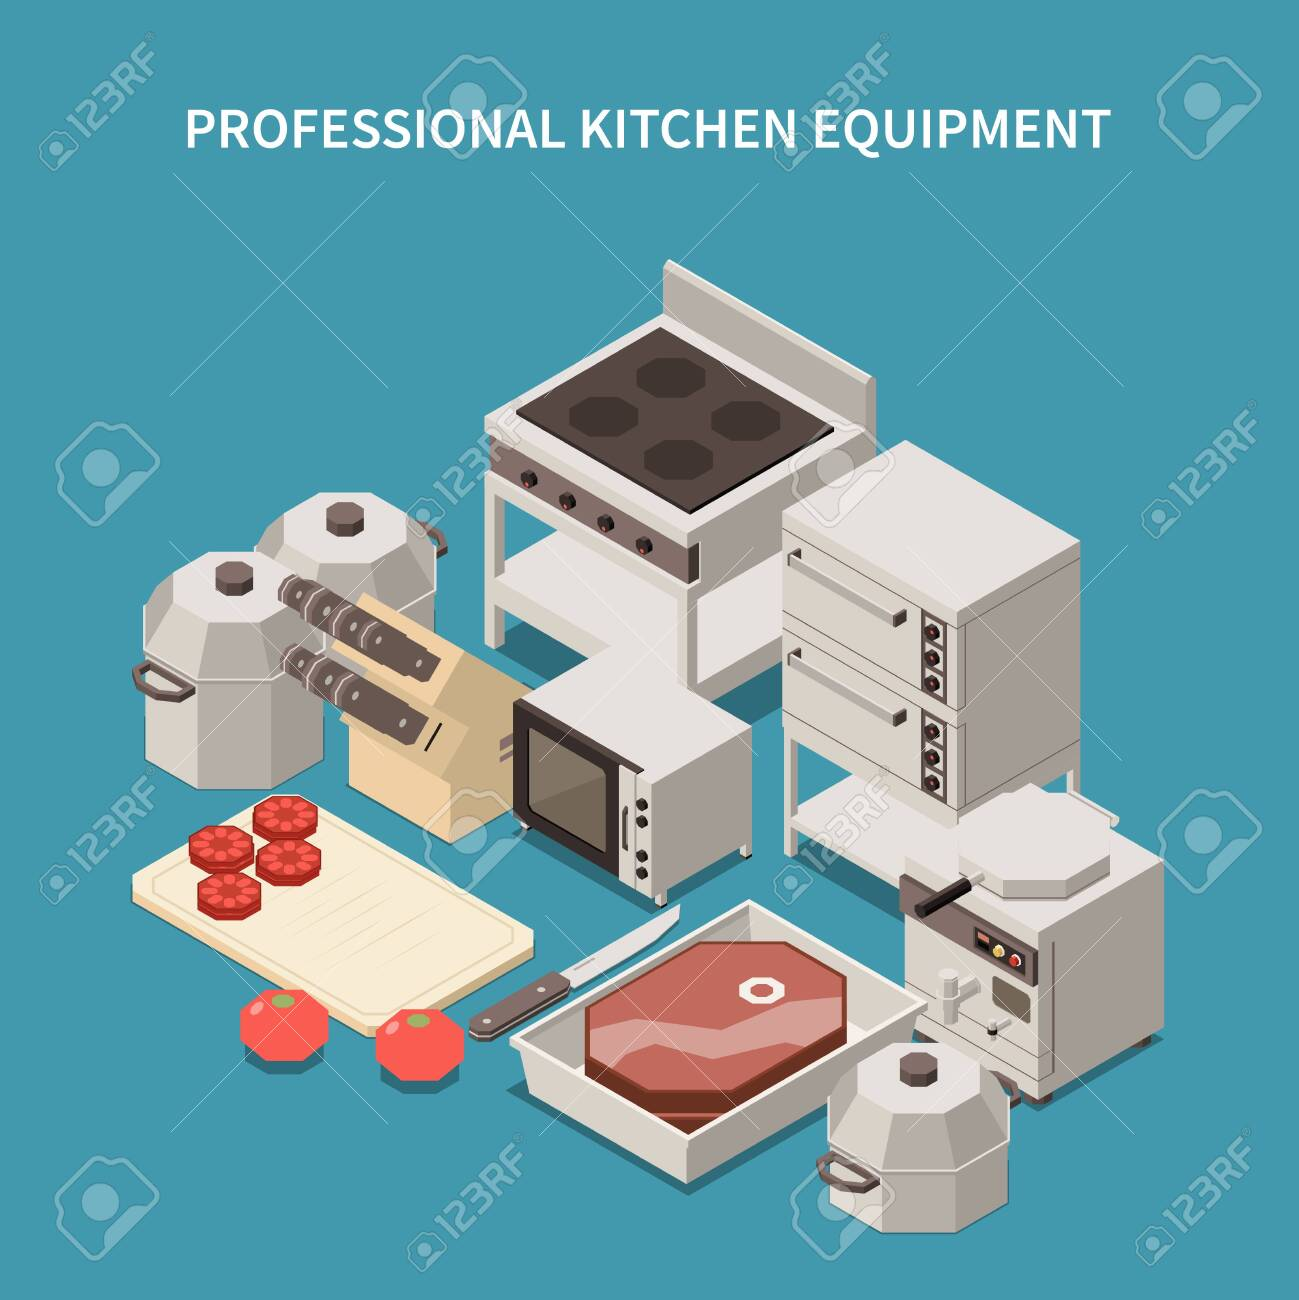 Professional kitchen appliances isometric image with commercial range microwave oven toaster breakfast equipment chef knives vector illustration - 141596850